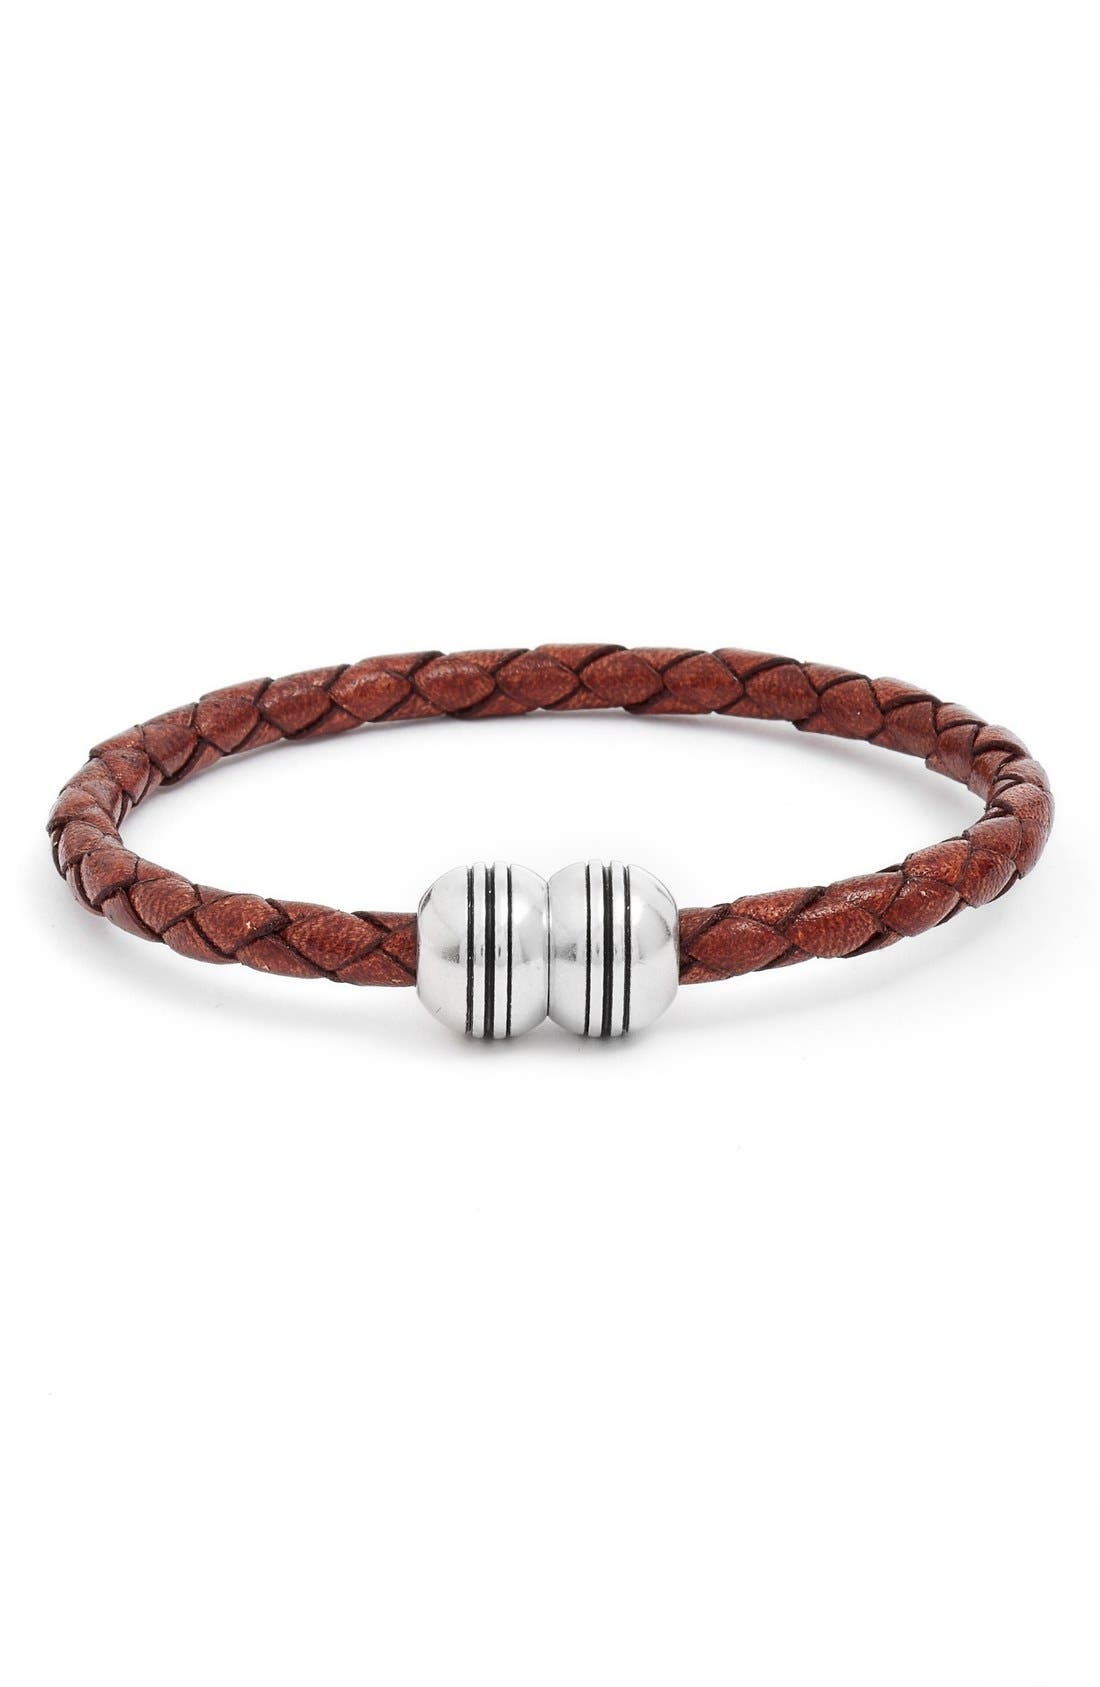 Braided Leather Bracelet,                             Main thumbnail 1, color,                             210